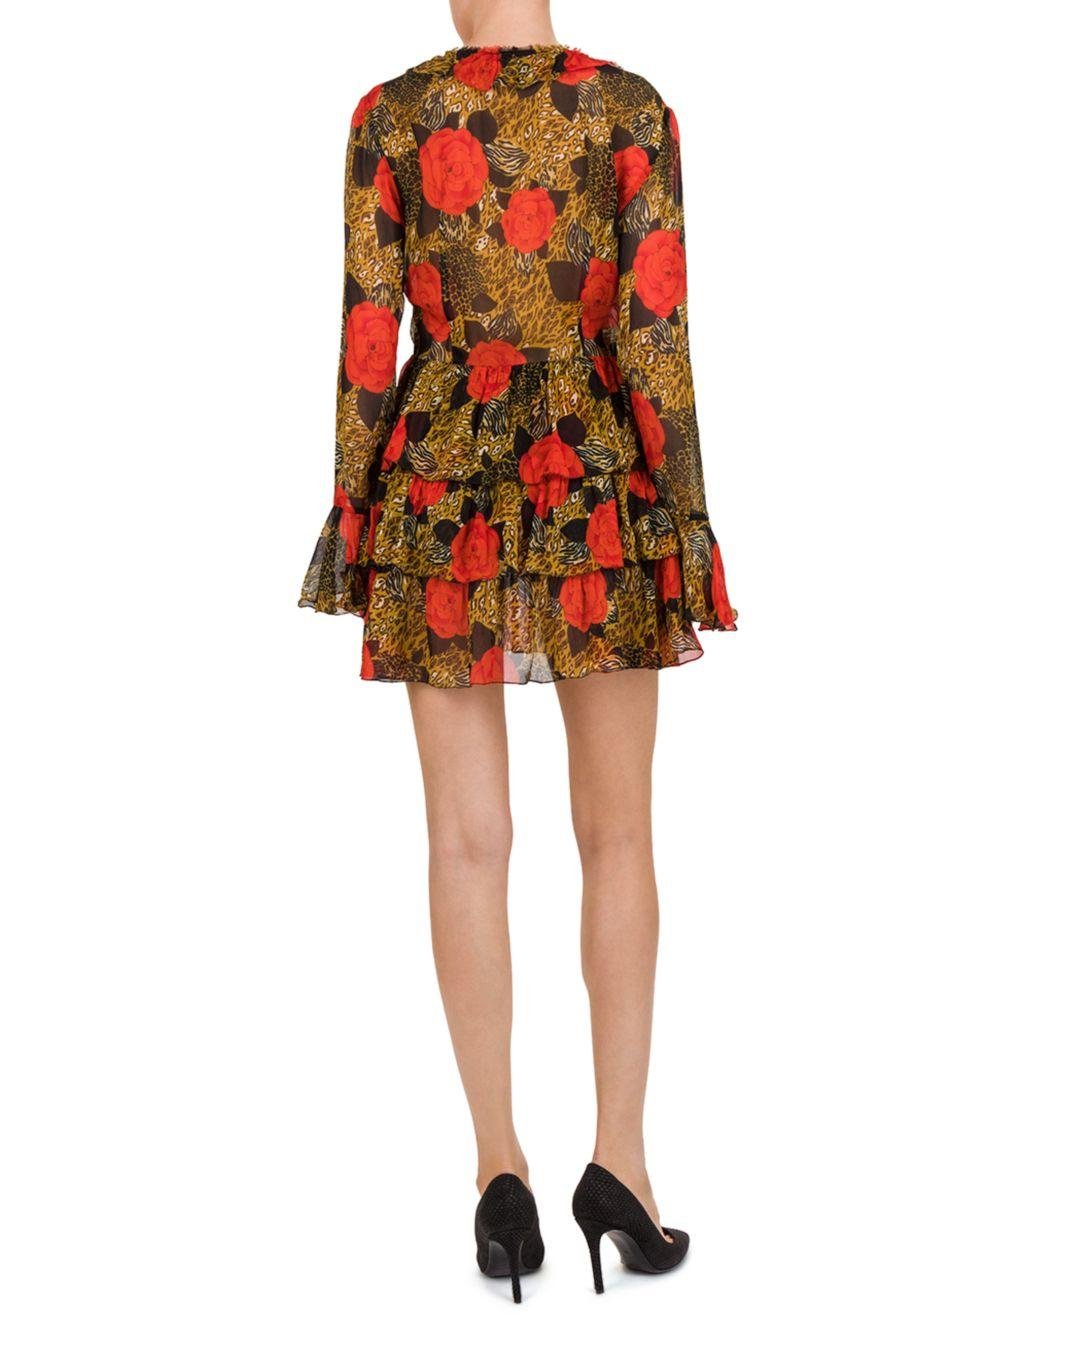 a84a3f016c The Kooples Jungle Flowers Dress in Red - Lyst